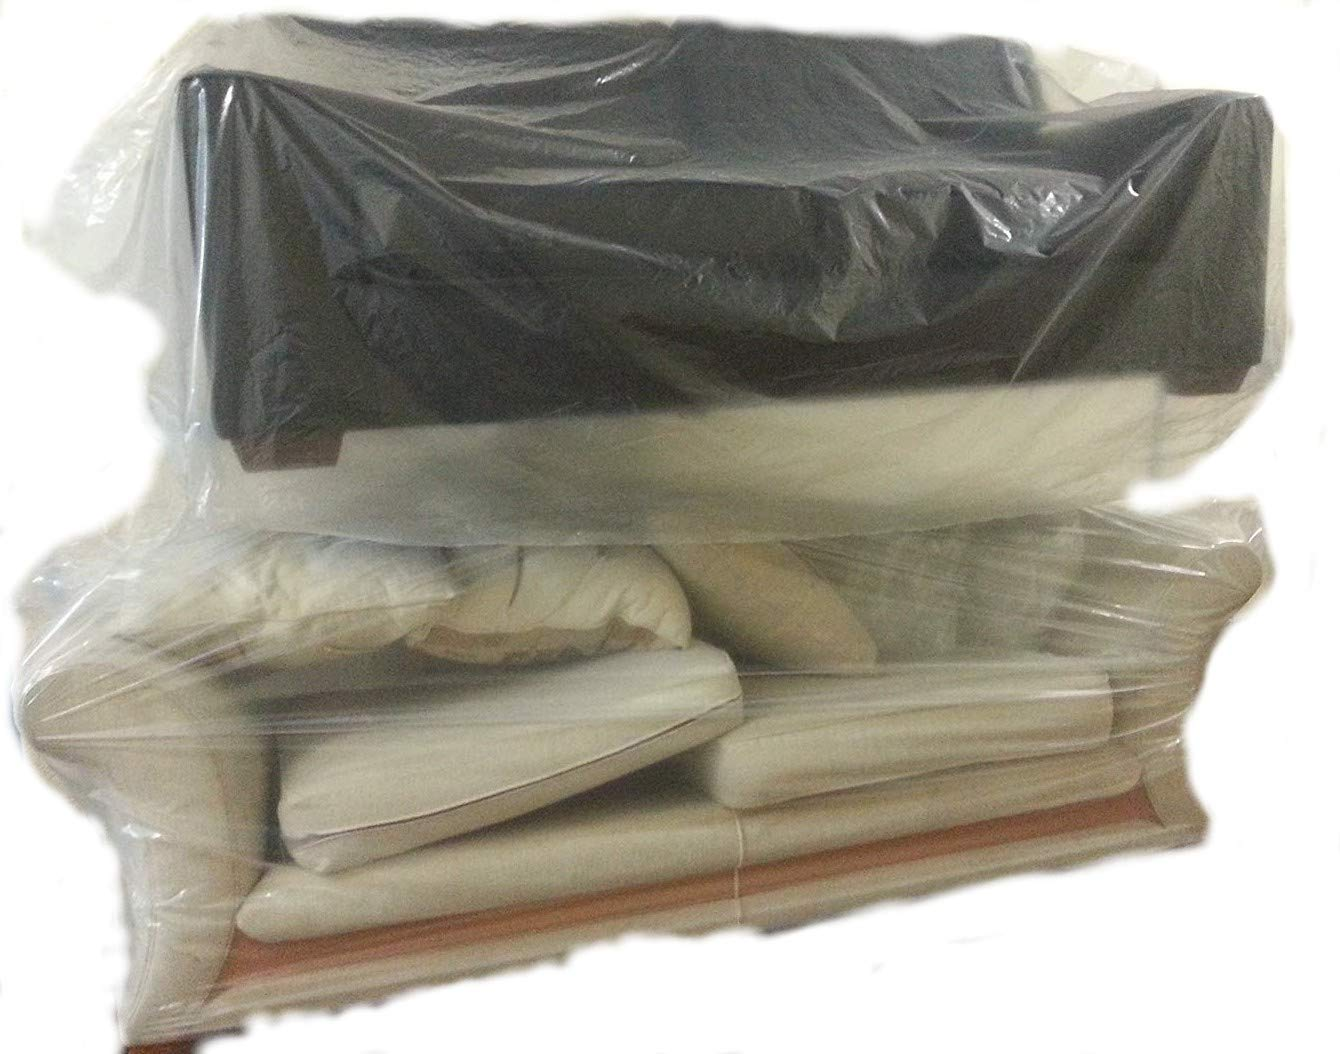 Dining Office Chair Footstool Storage Sofa Furniture Settee Dust Sheet Bag Cover Small to Large Moving Removal Multi Size Packs Available